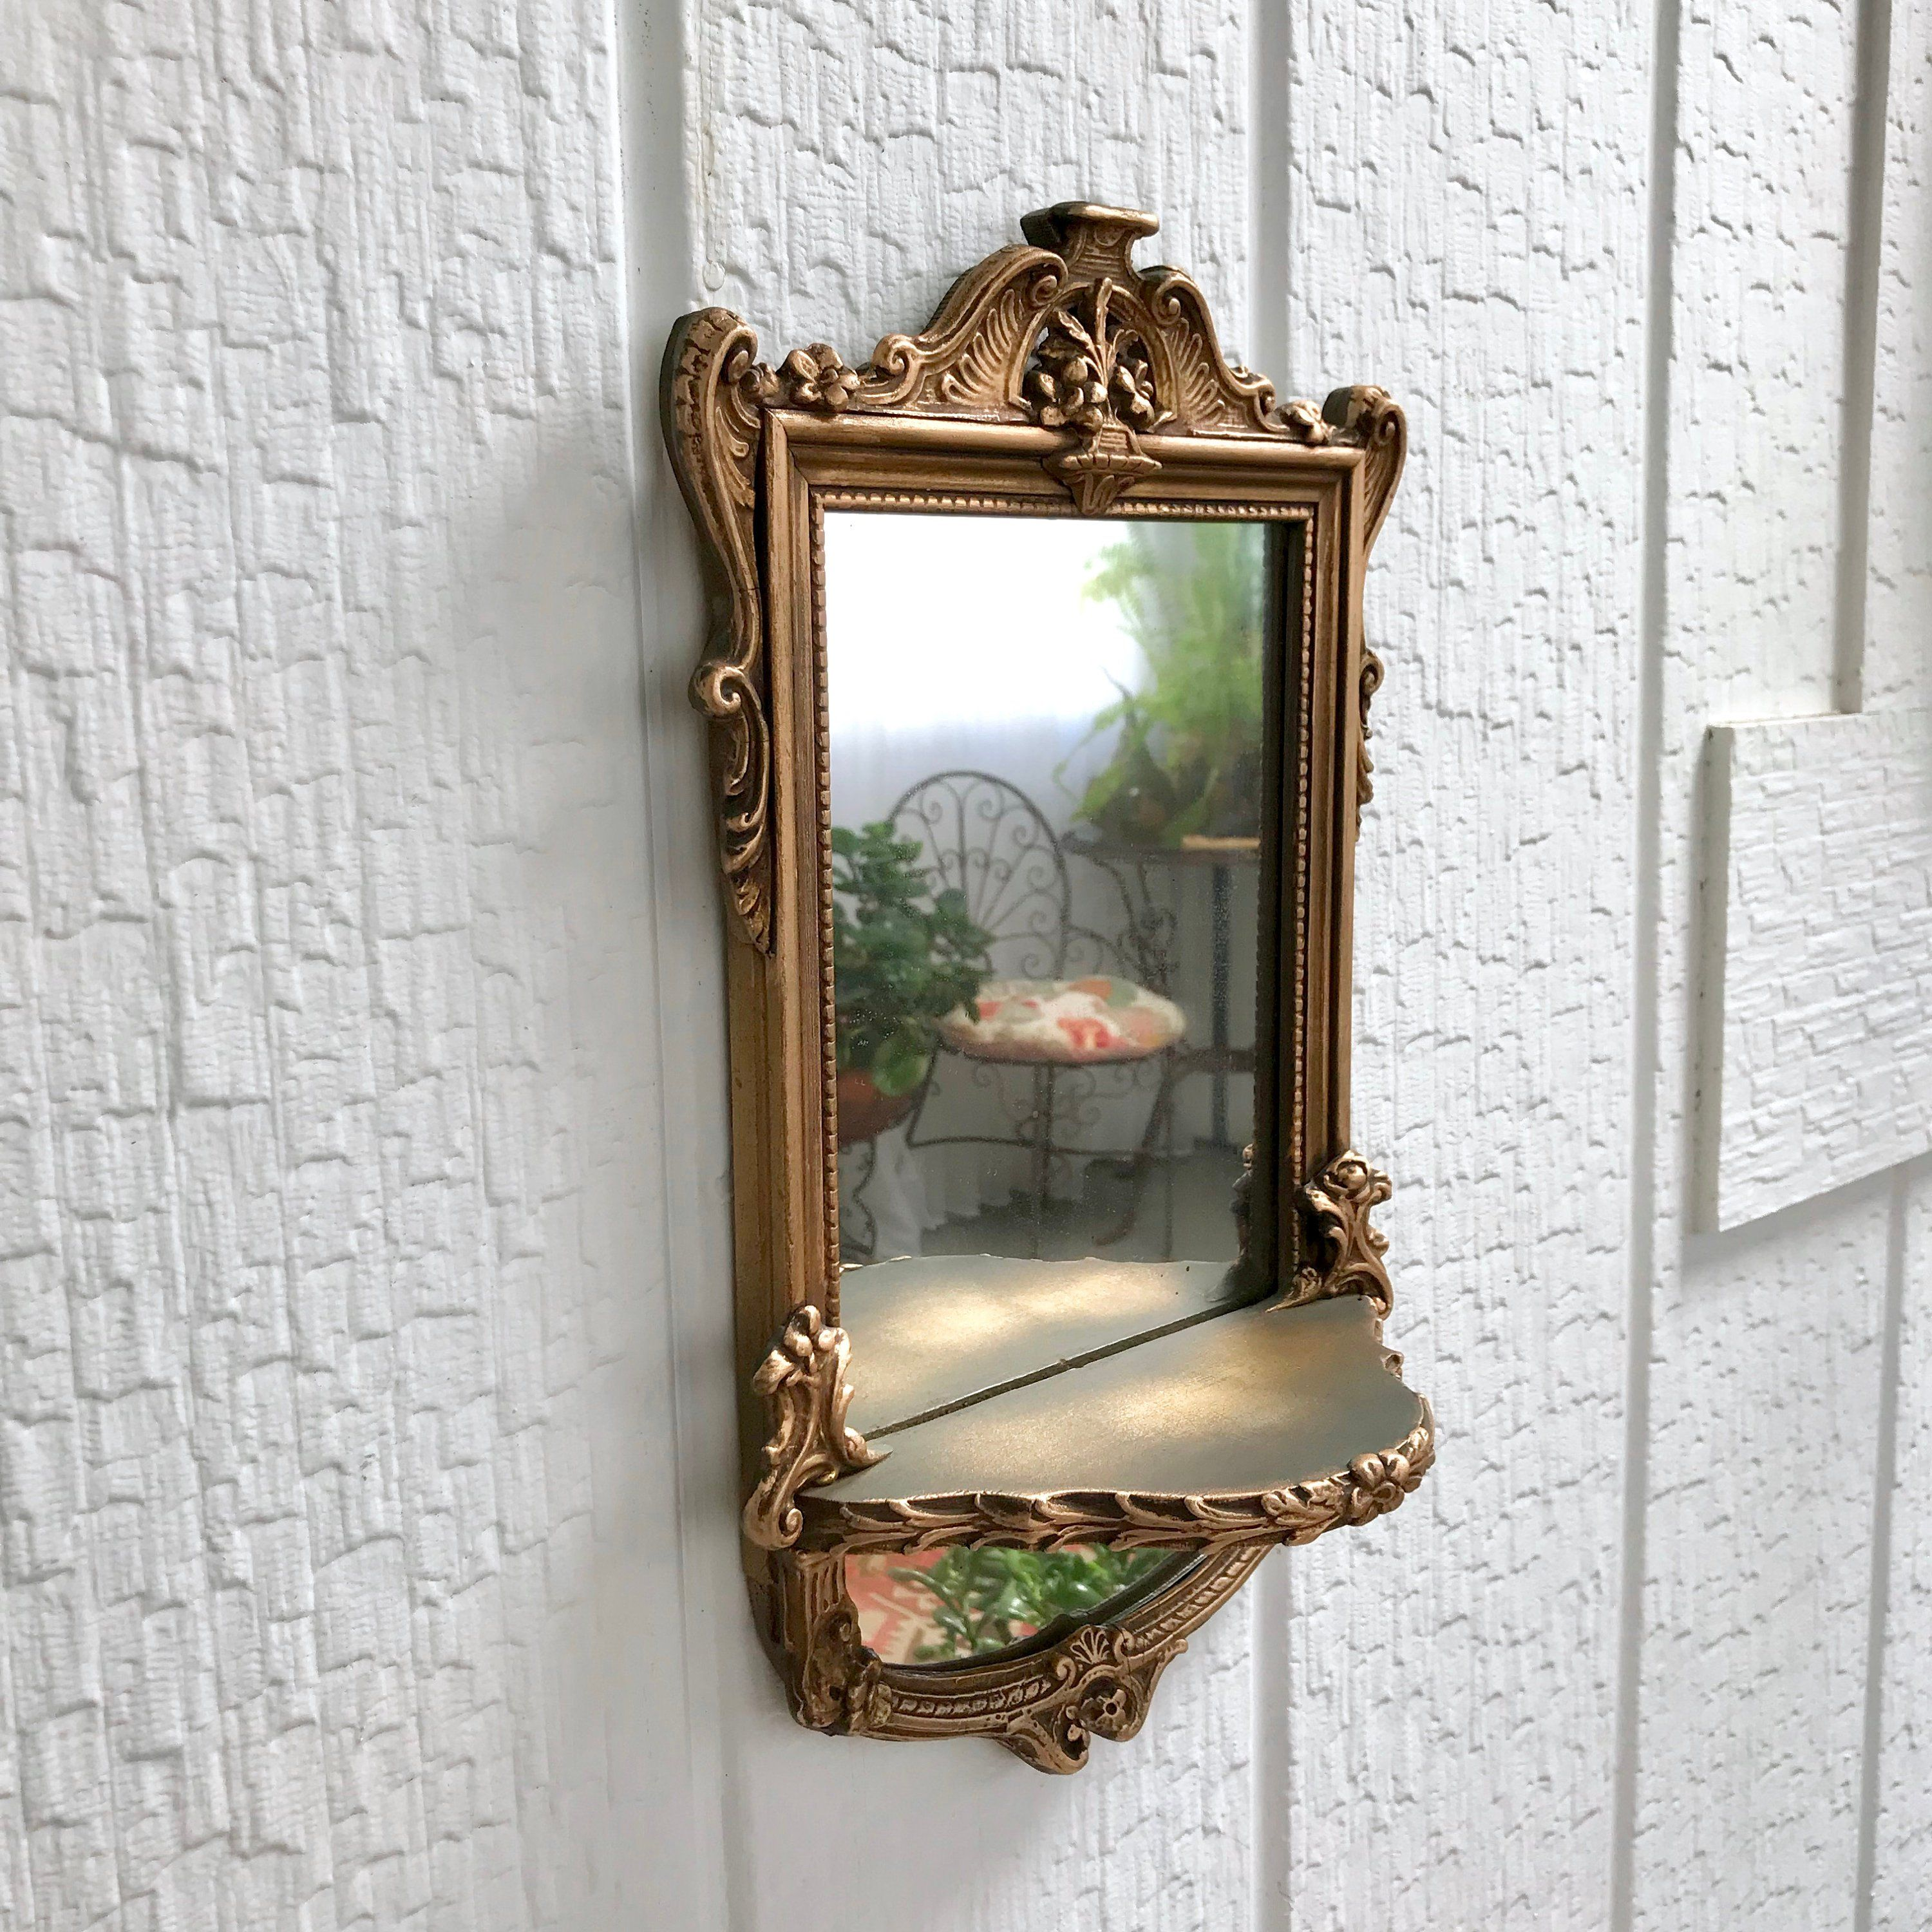 Antique Wall Mirror With Shelf Small Carved Wood Victorian Antique Mirror Wall Victorian Wall Mirrors Antique Gold Mirror